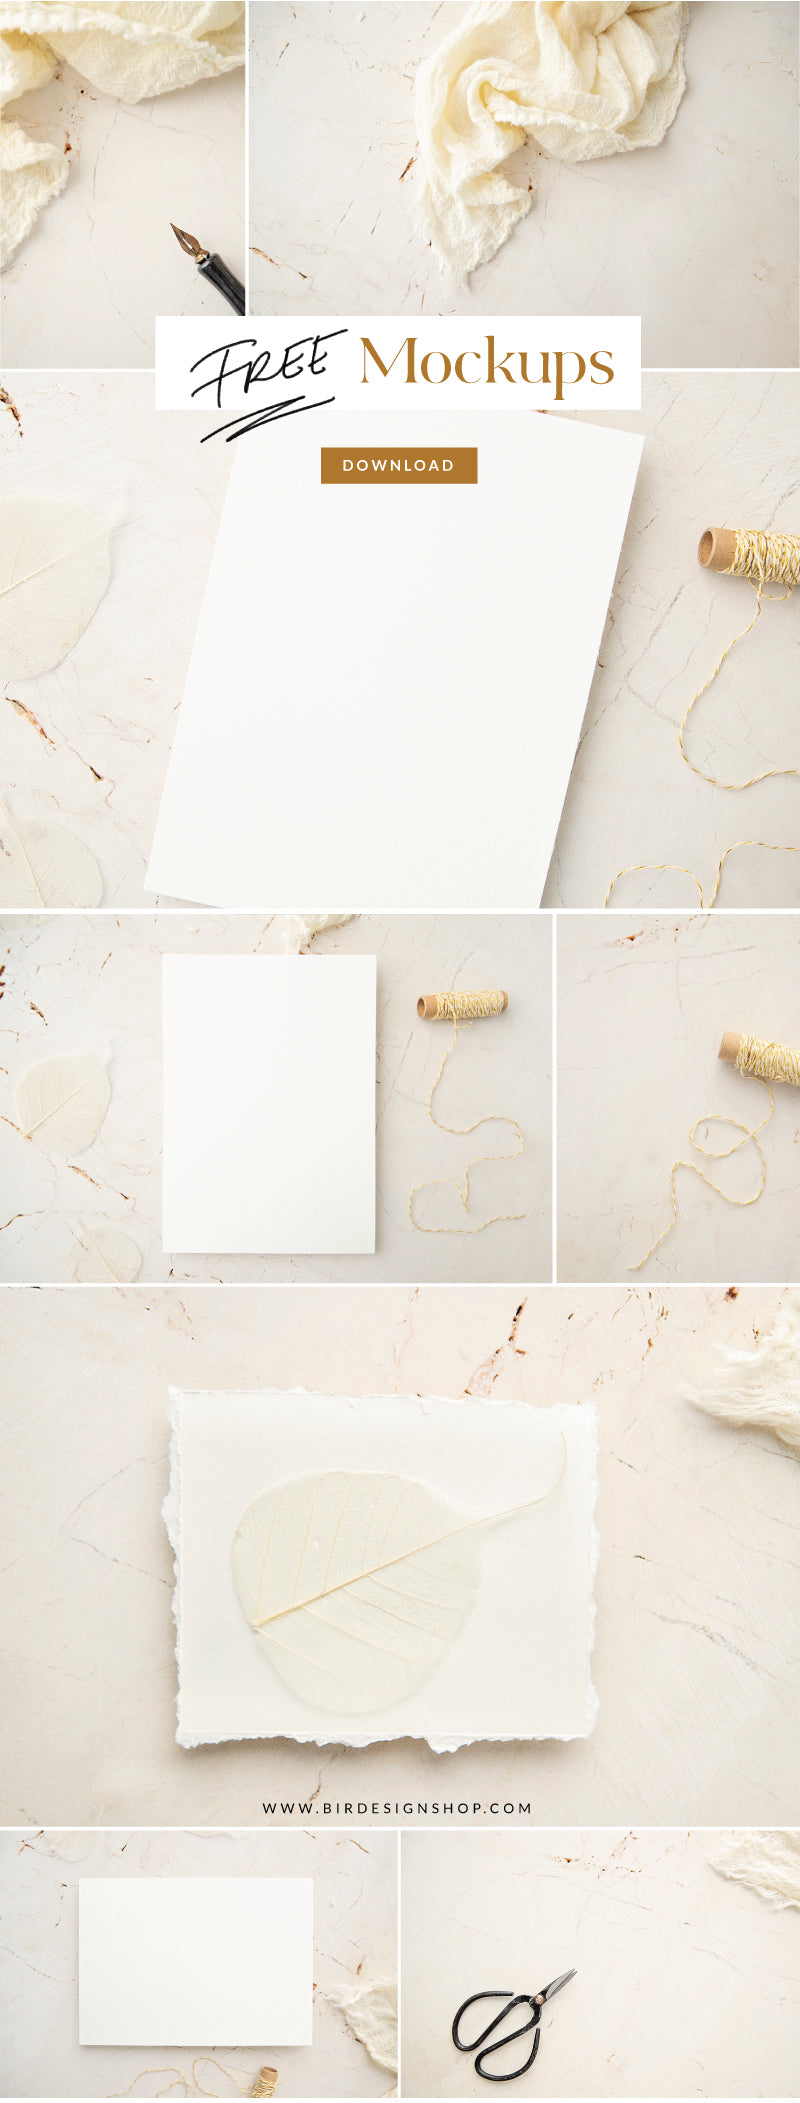 Free Stock Images - Stationery Mockups